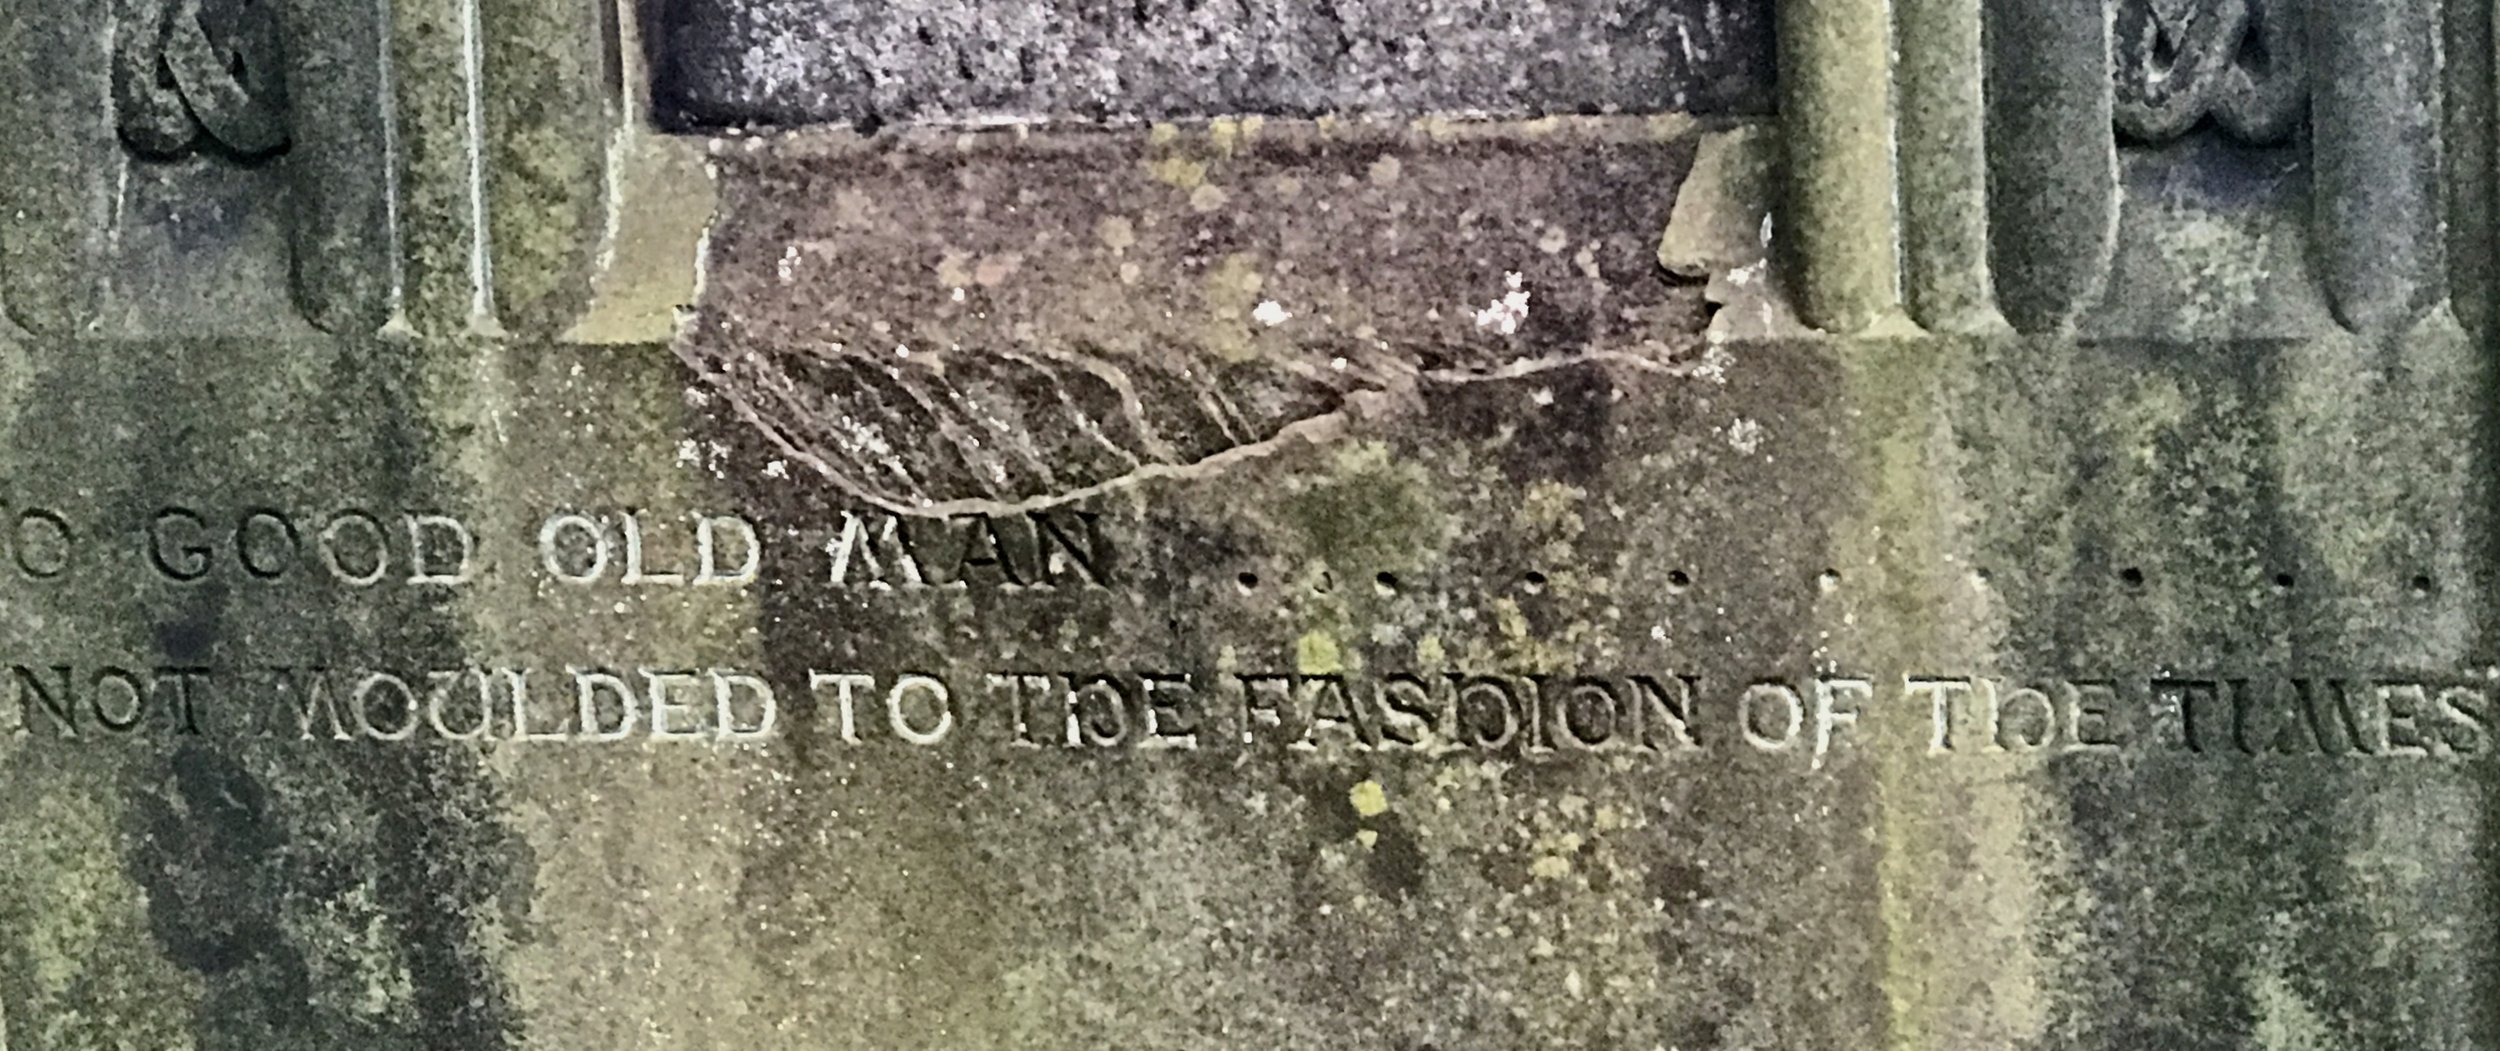 """""""O Good Old Man, not moulded to the fashion of the times."""" A gravestone Joel and I found on our most recent trip to Edinburgh."""